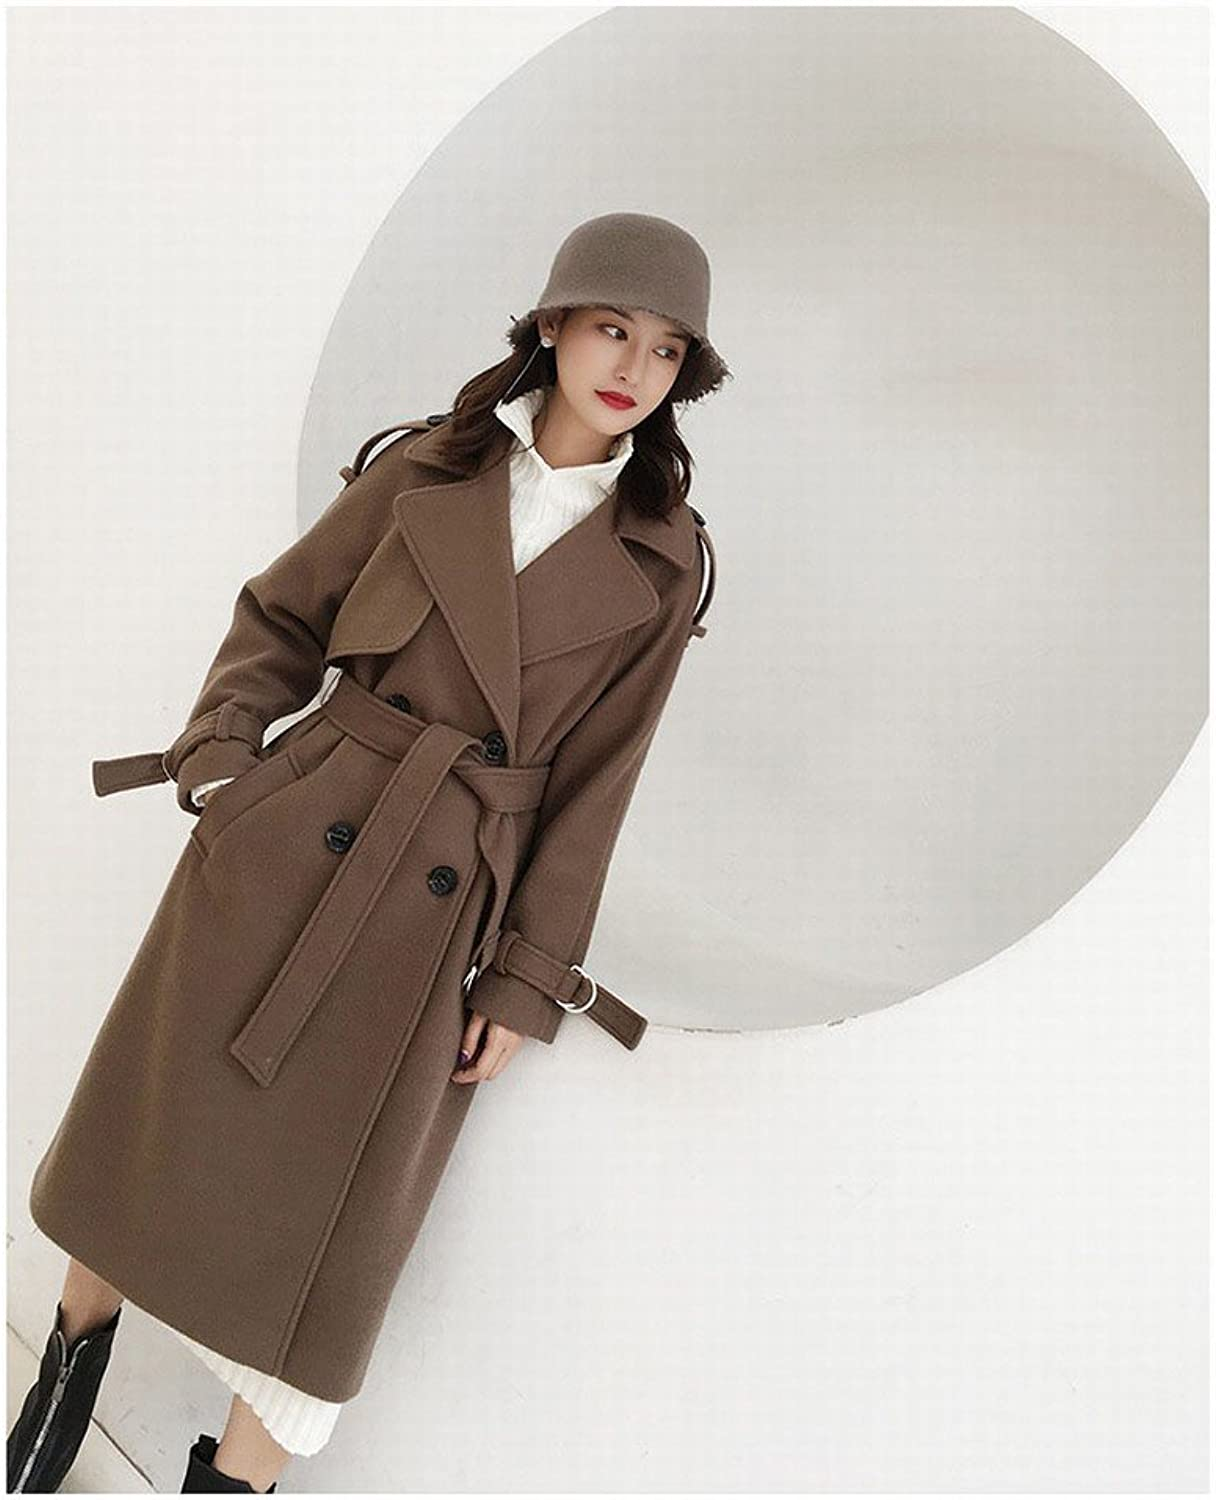 LD the Trend of the Lace Section of the Lengthening the color of the Coat is a Long Sleeves Fashion Woolen Coat